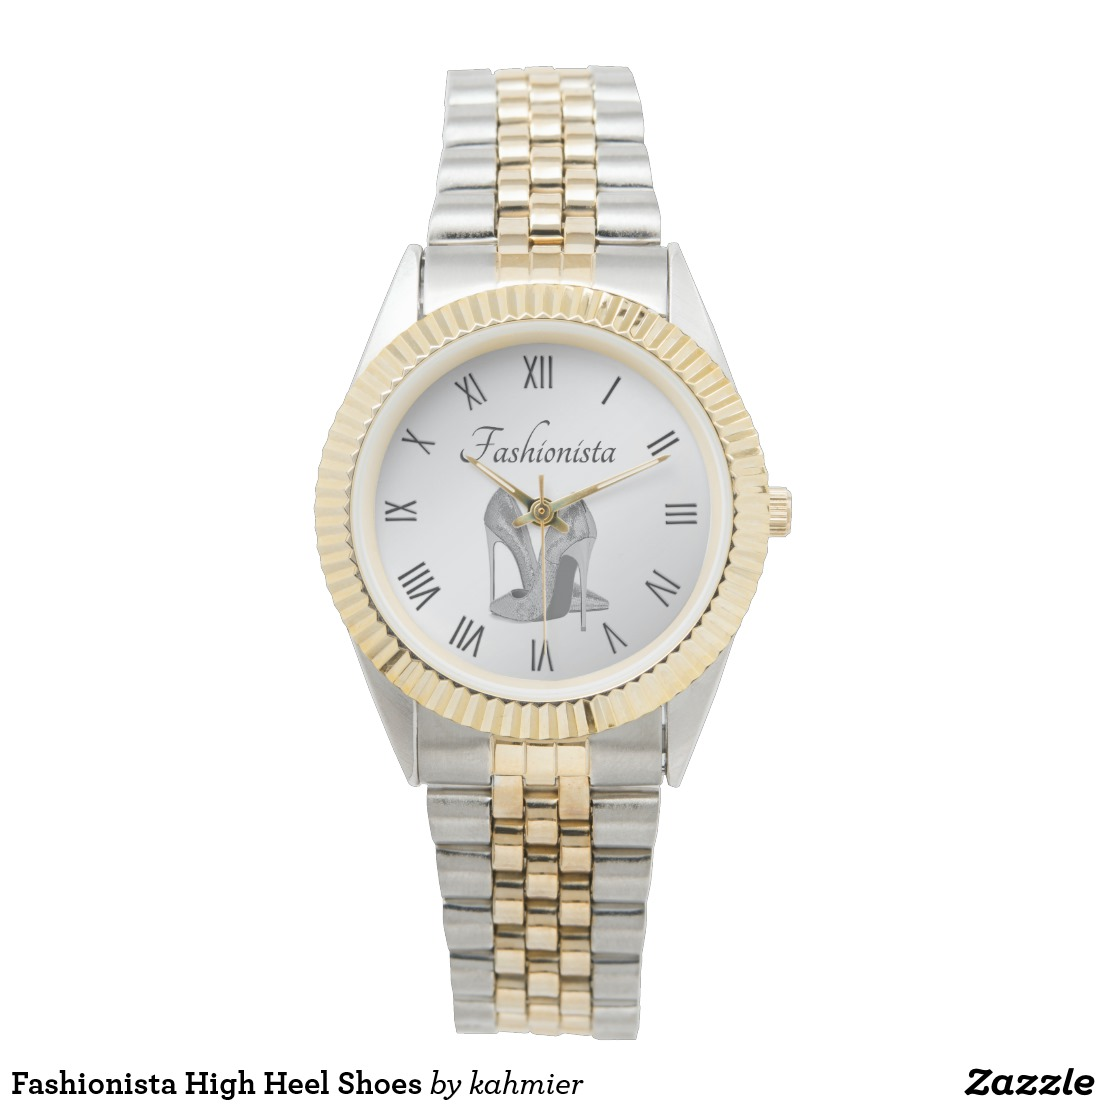 Fashionista High Heel Shoes Watch